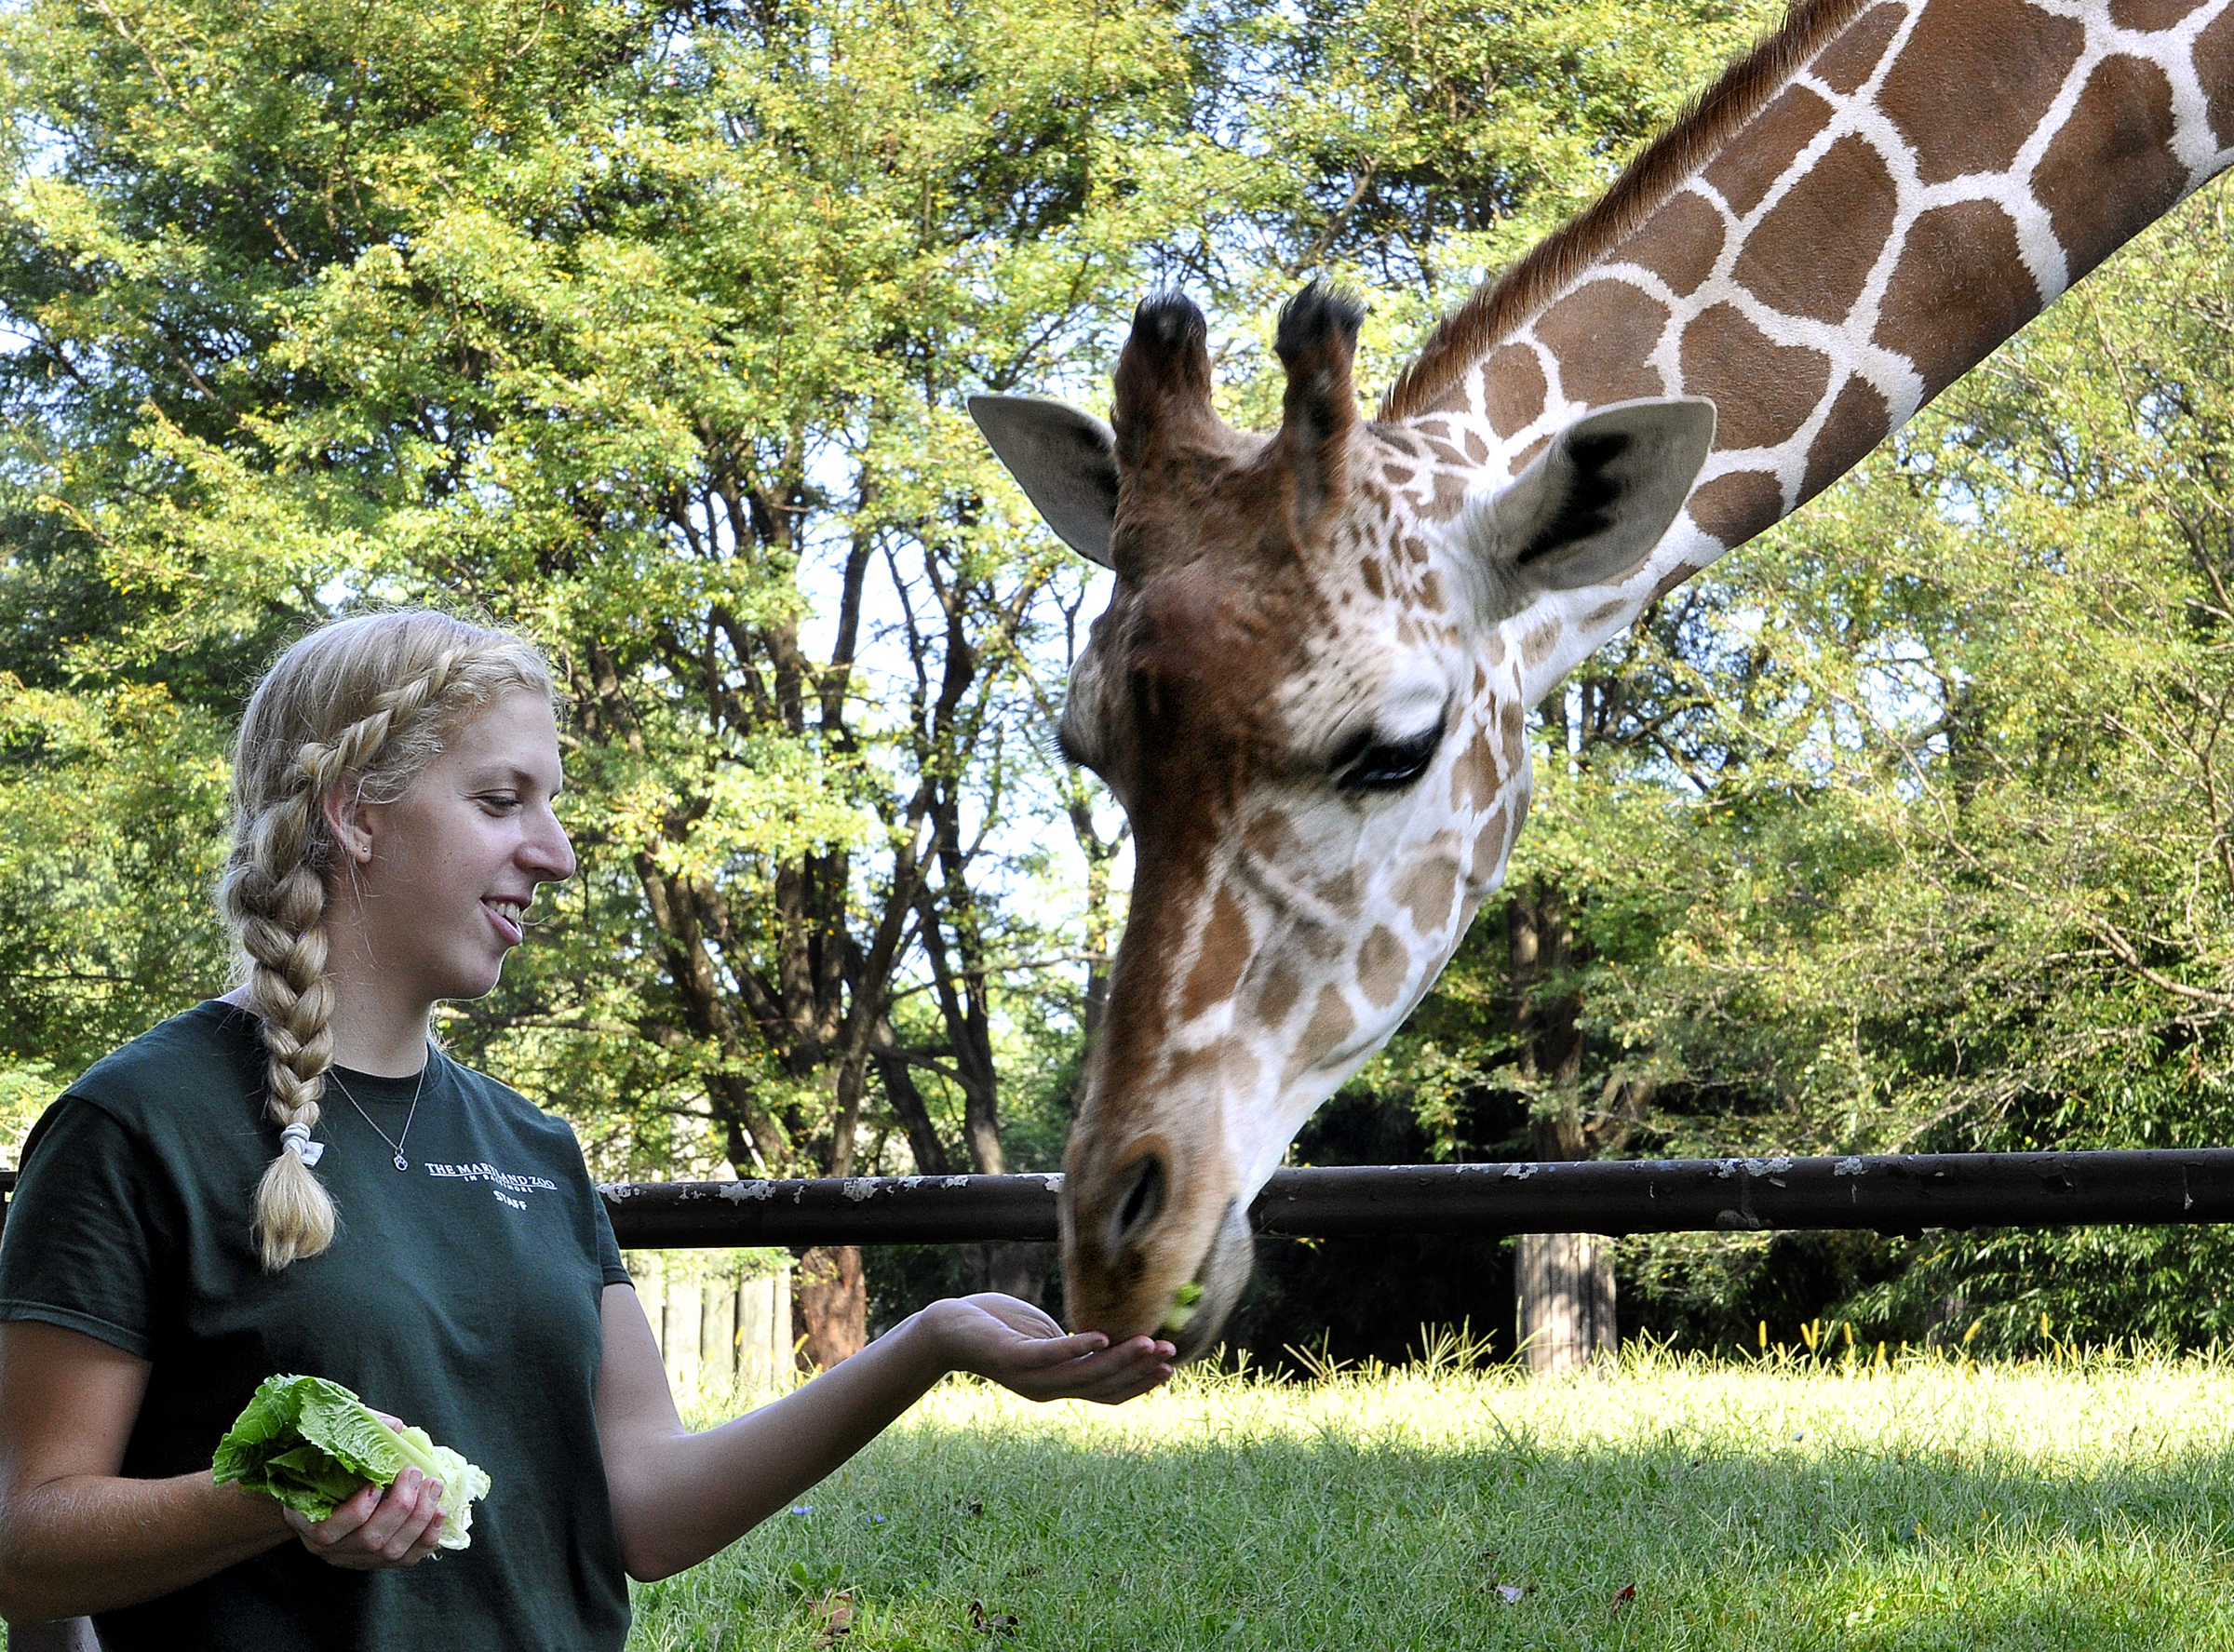 Get That Life How I Became A Zookeeper